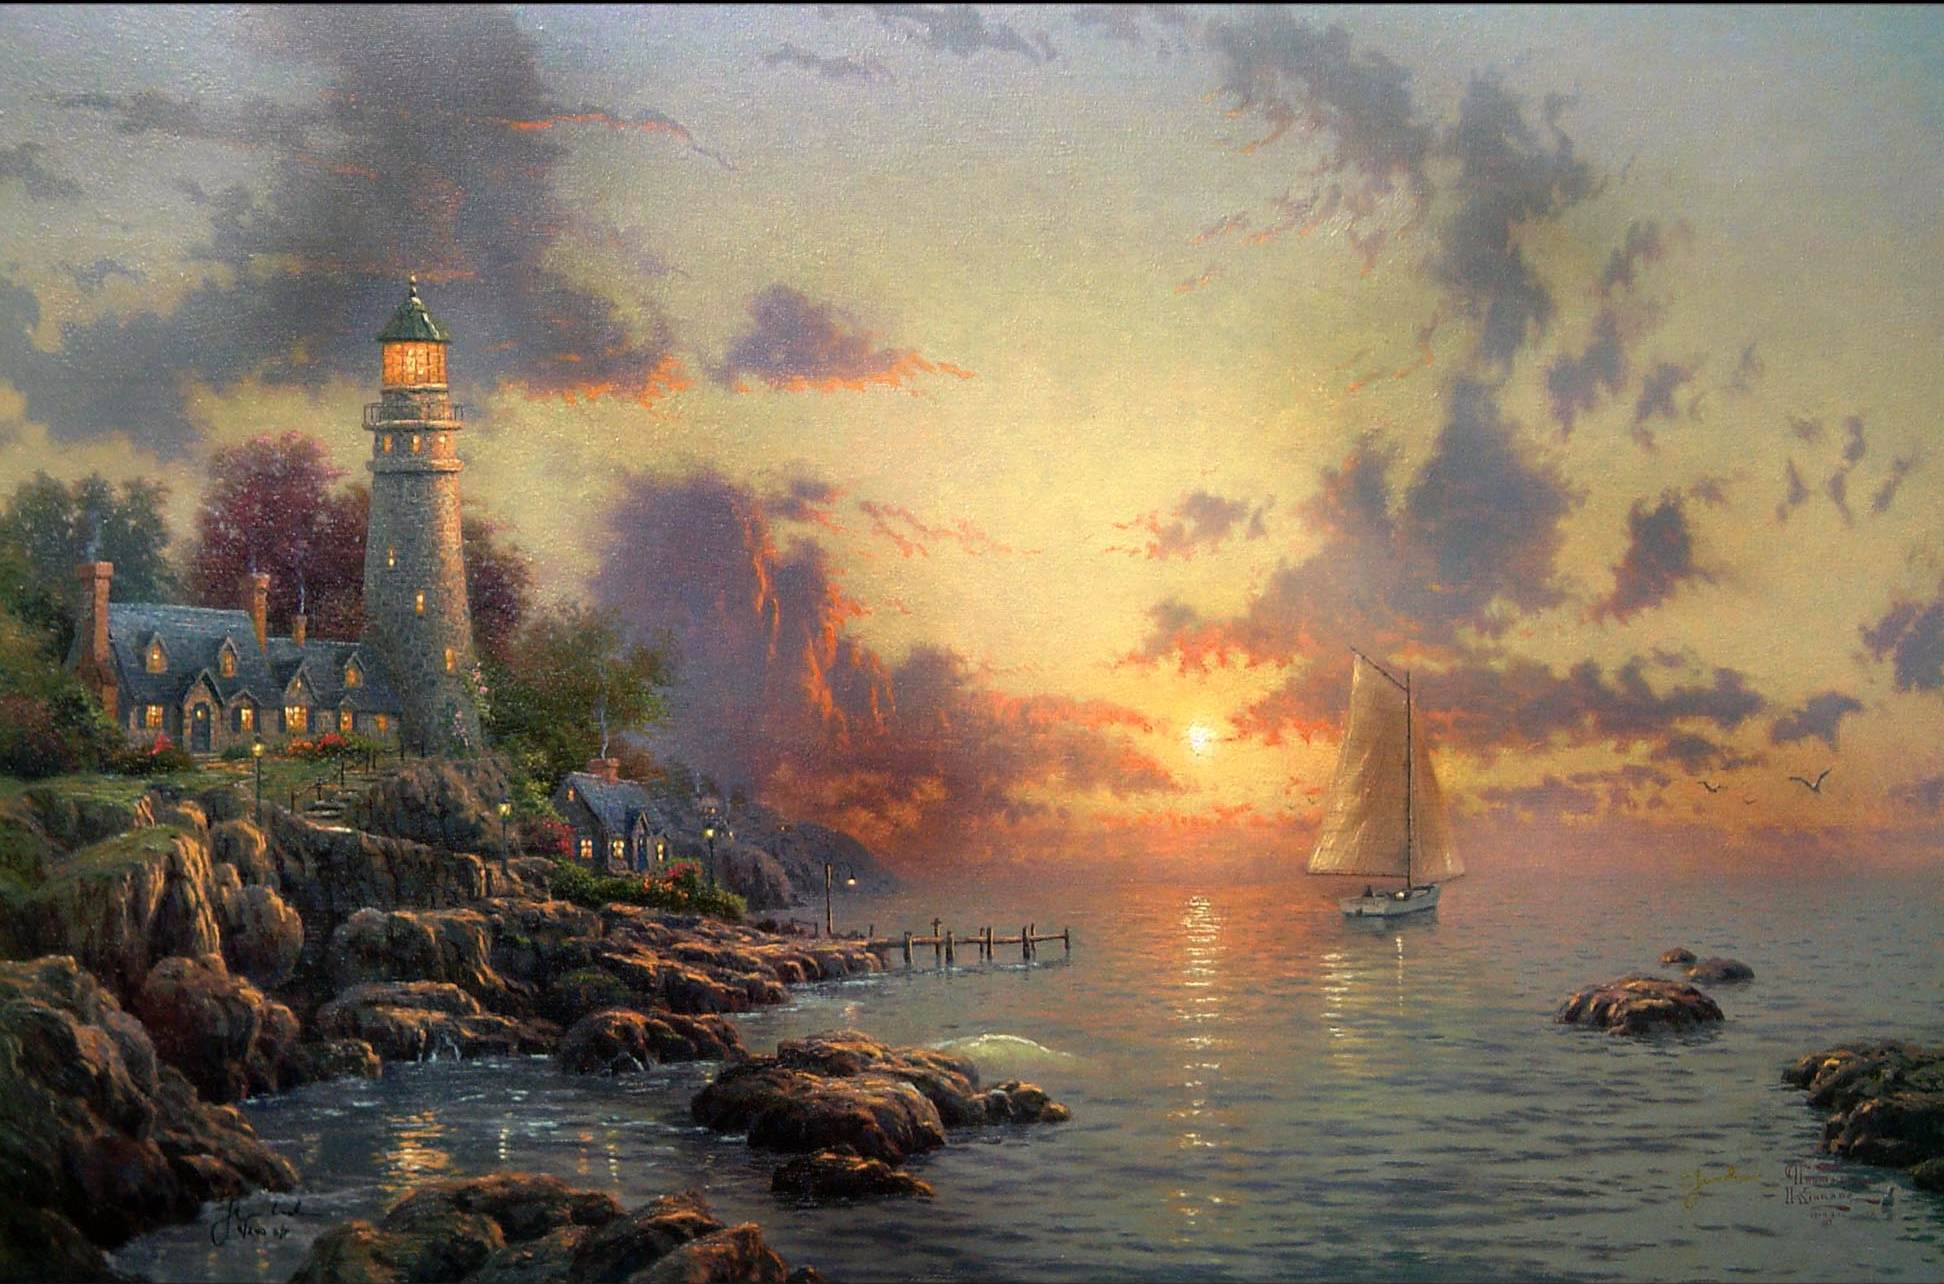 Thomas Kinkade Sea Of Tranquility Wallpaper ForWallpapercom 1944x1284